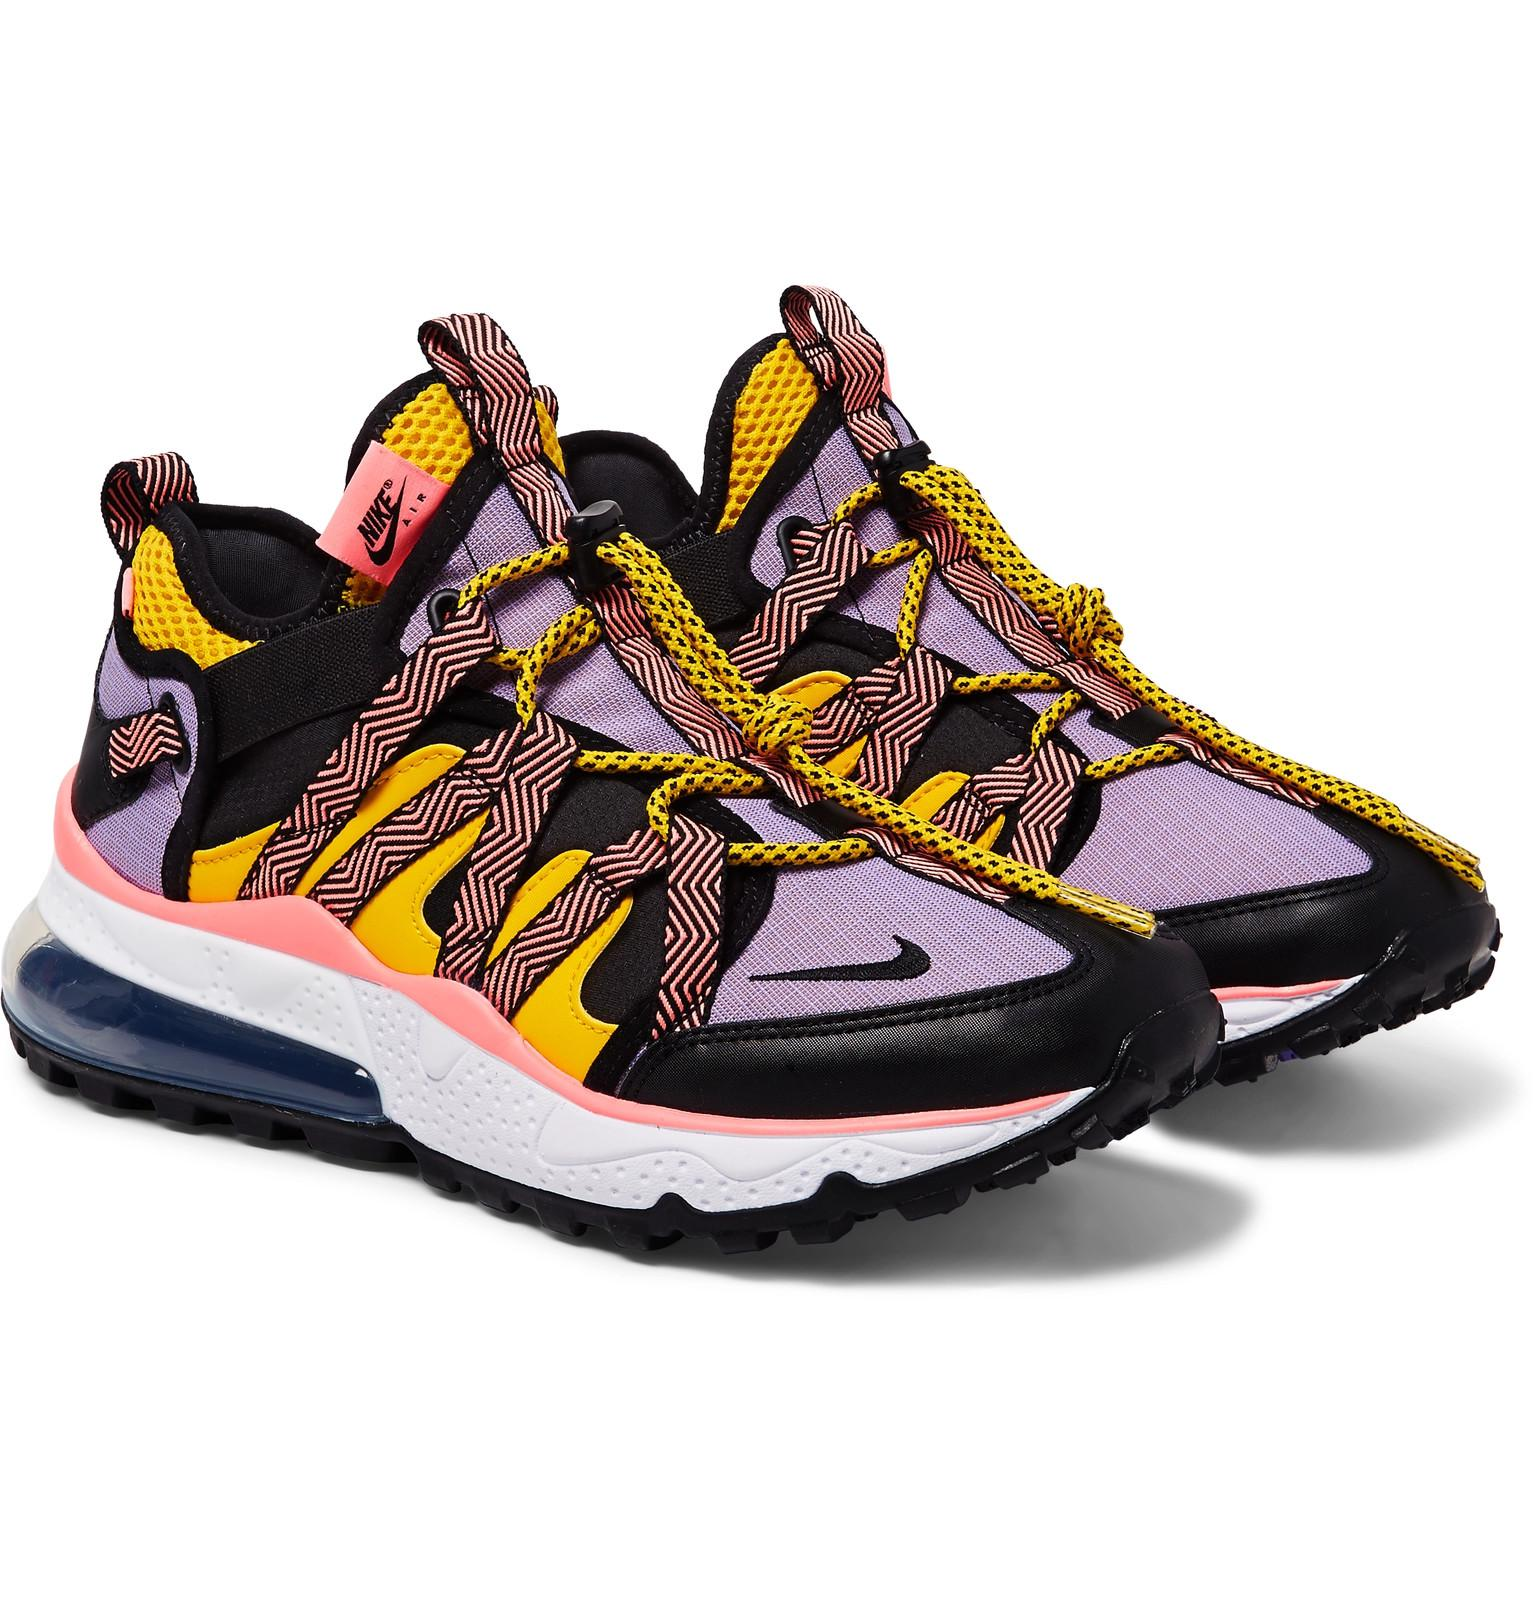 new style de13b c32f8 Nike Multicolor Air Max 270 Bowfin Mesh And Nylon Sneakers for men